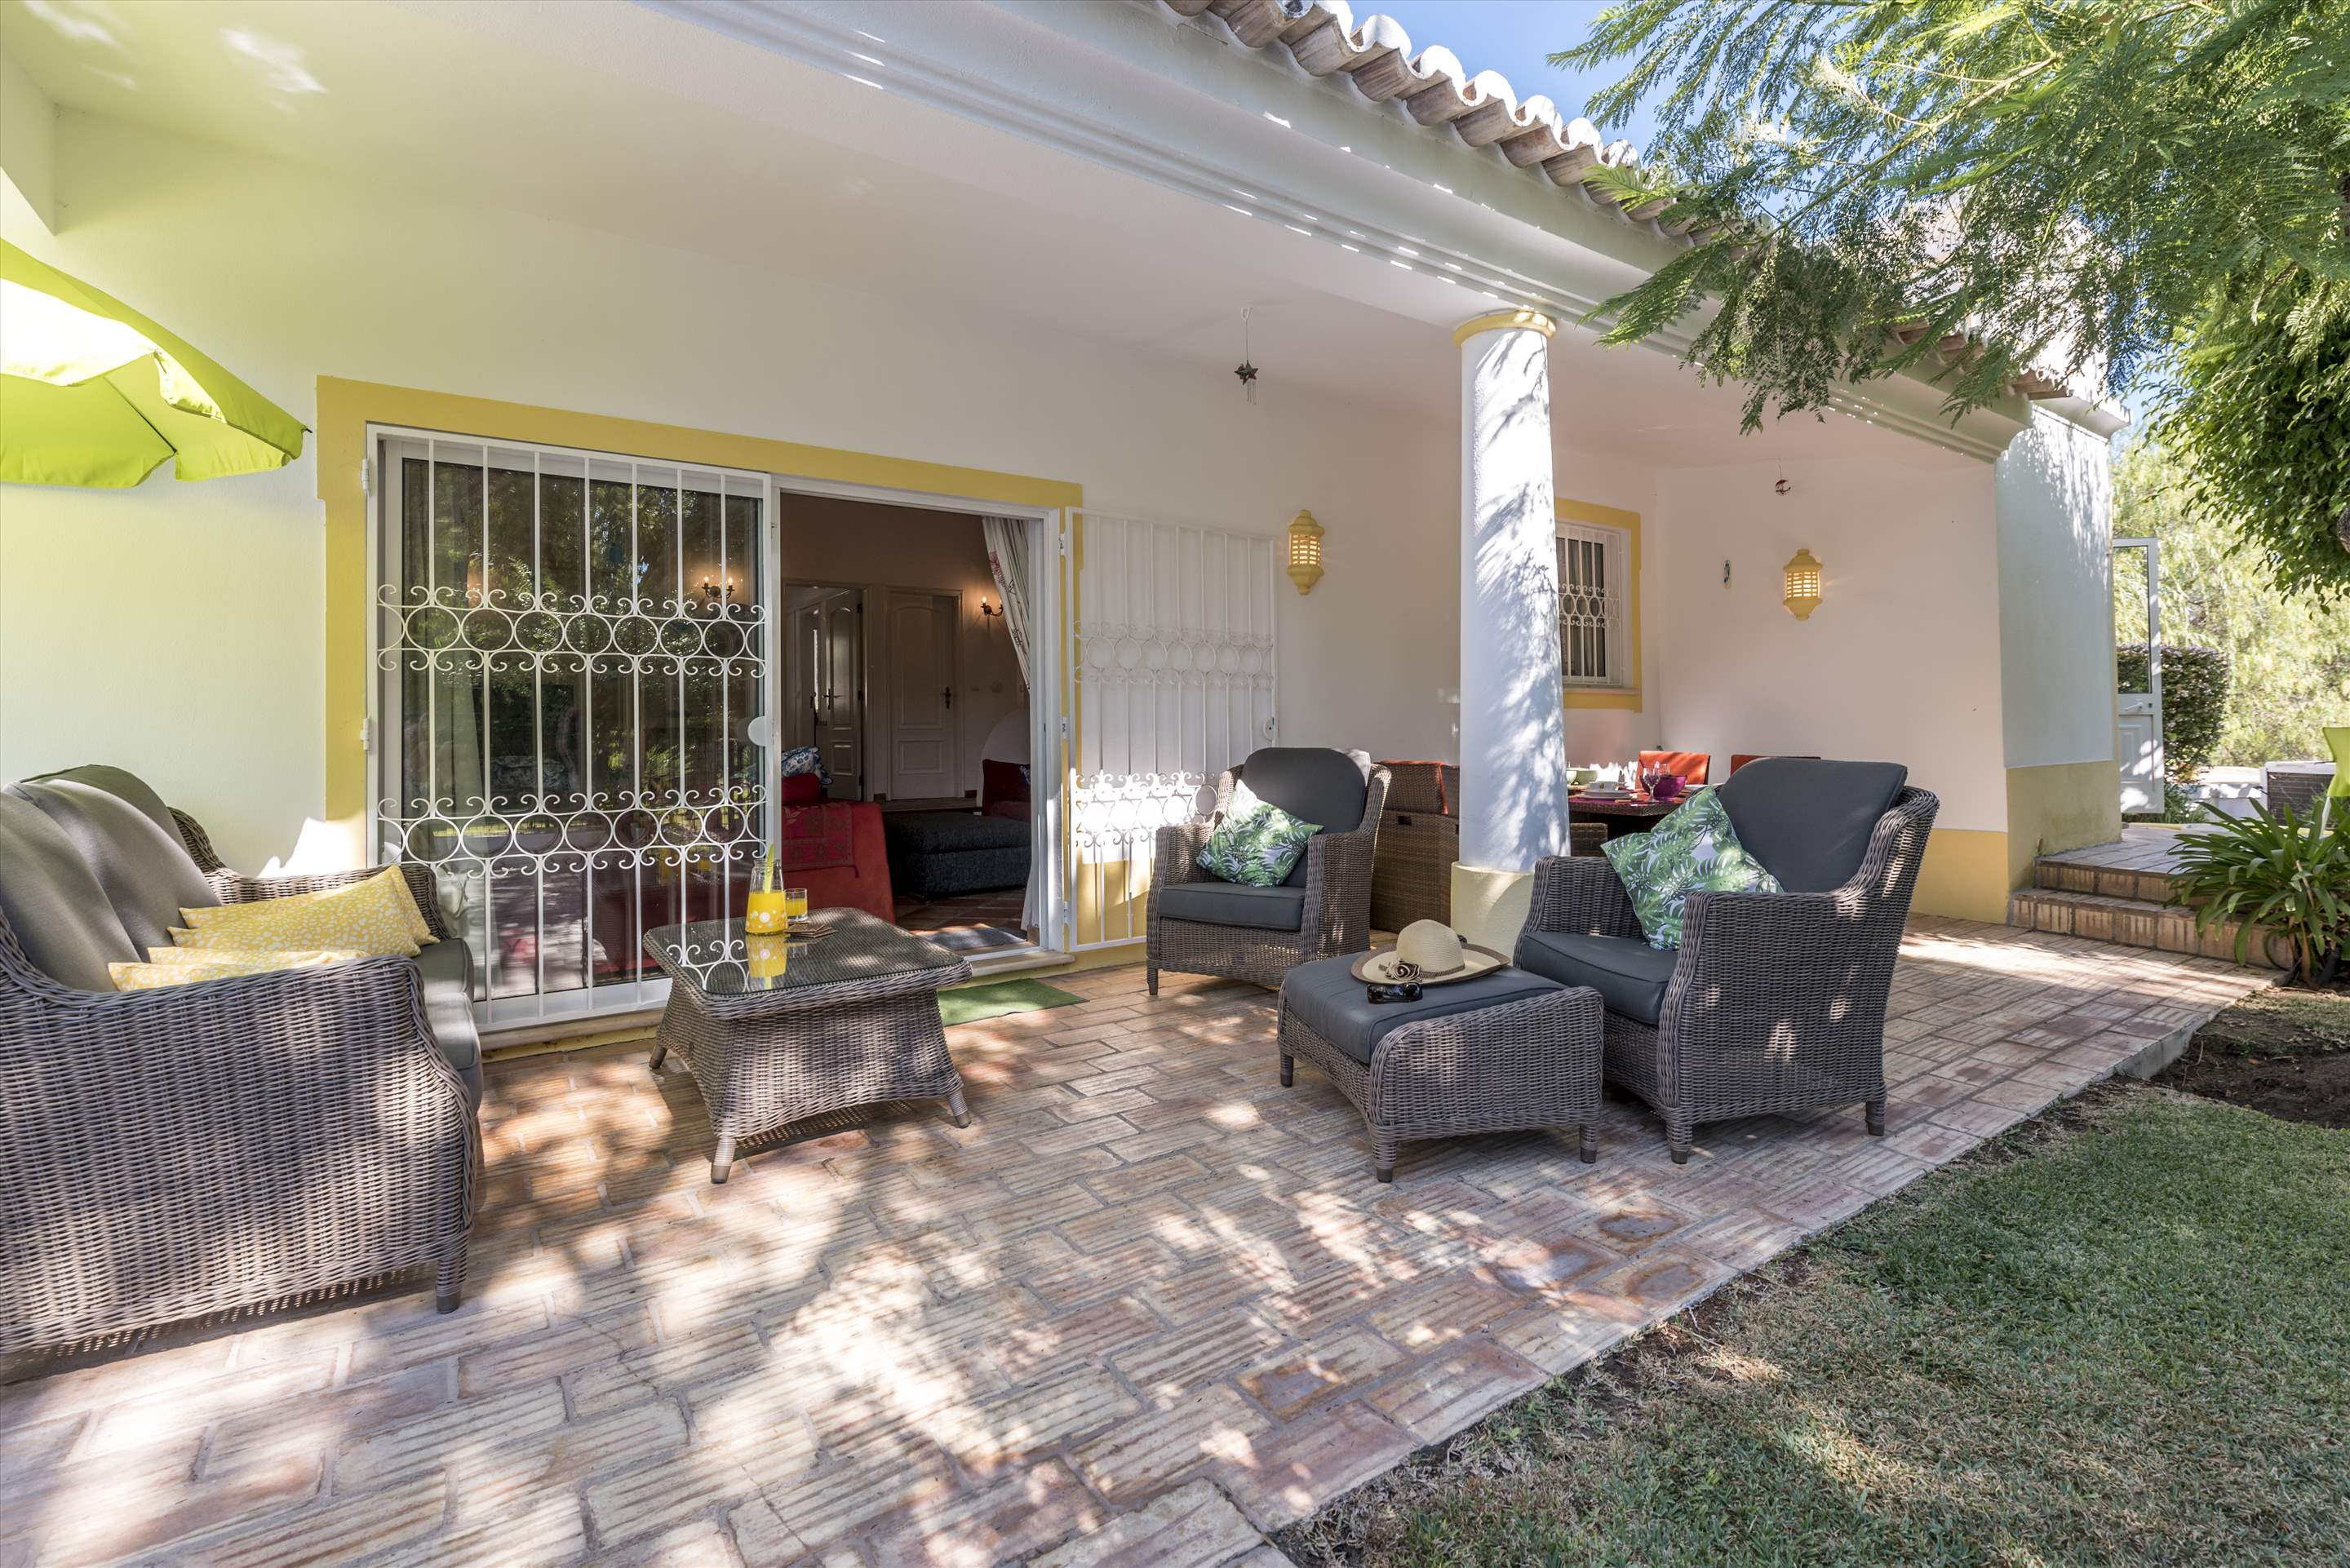 Casa Guia, Two Bedroom Rate, 2 bedroom villa in Gale, Vale da Parra and Guia, Algarve Photo #3